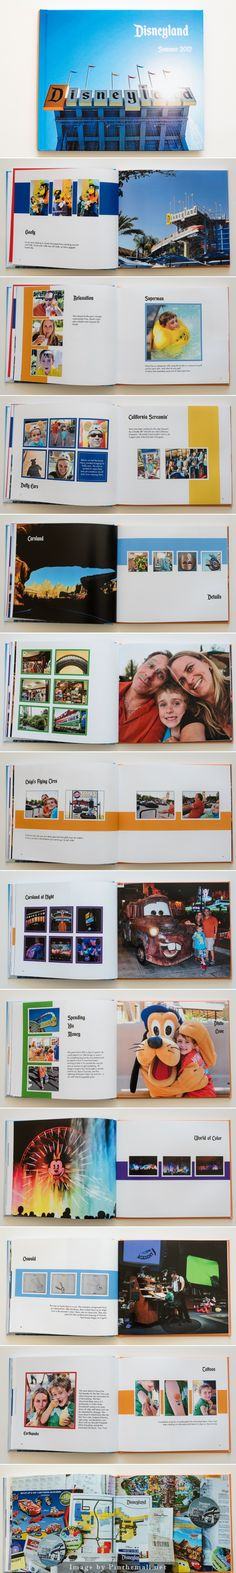 Disneyland Photo Book.